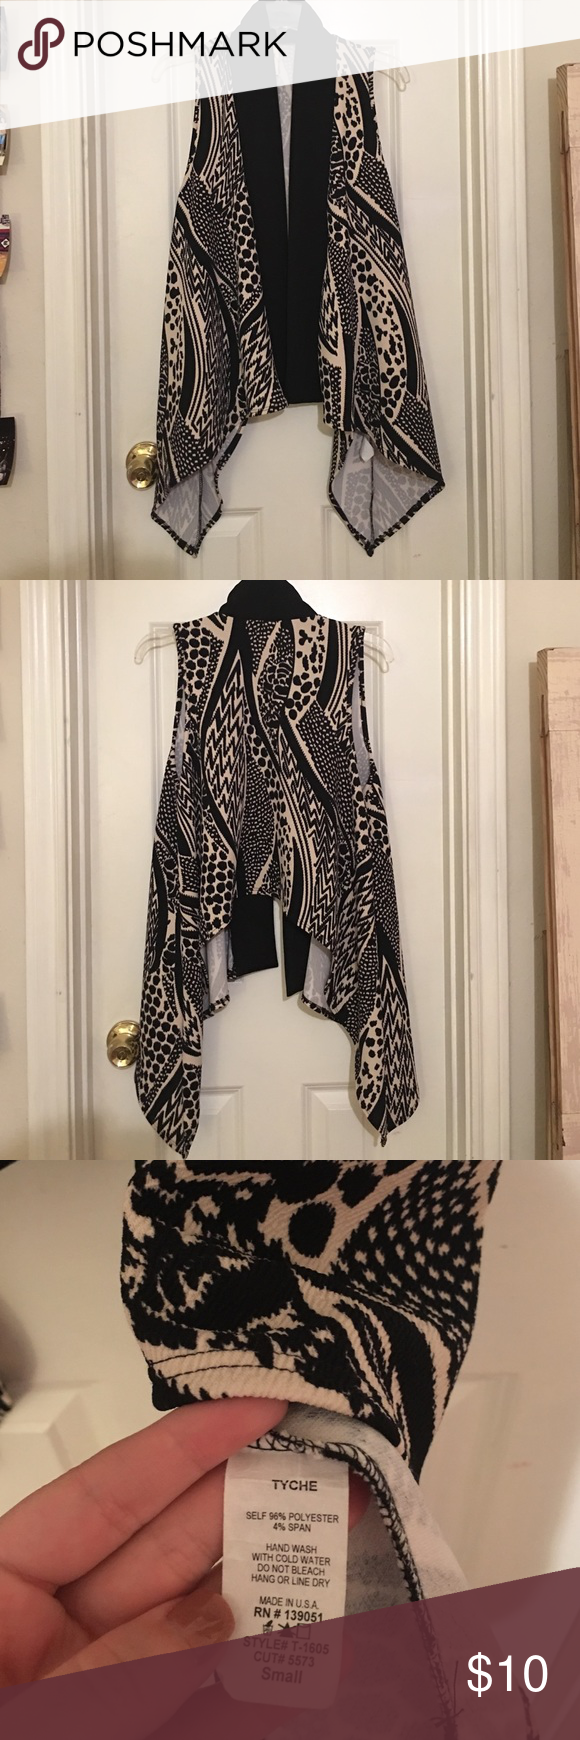 Sleeveless Black & Tan Cardigan Super cute patterned cardigan, worn once. Like new condition. See tag picture for material details. Tyche Sweaters Cardigans